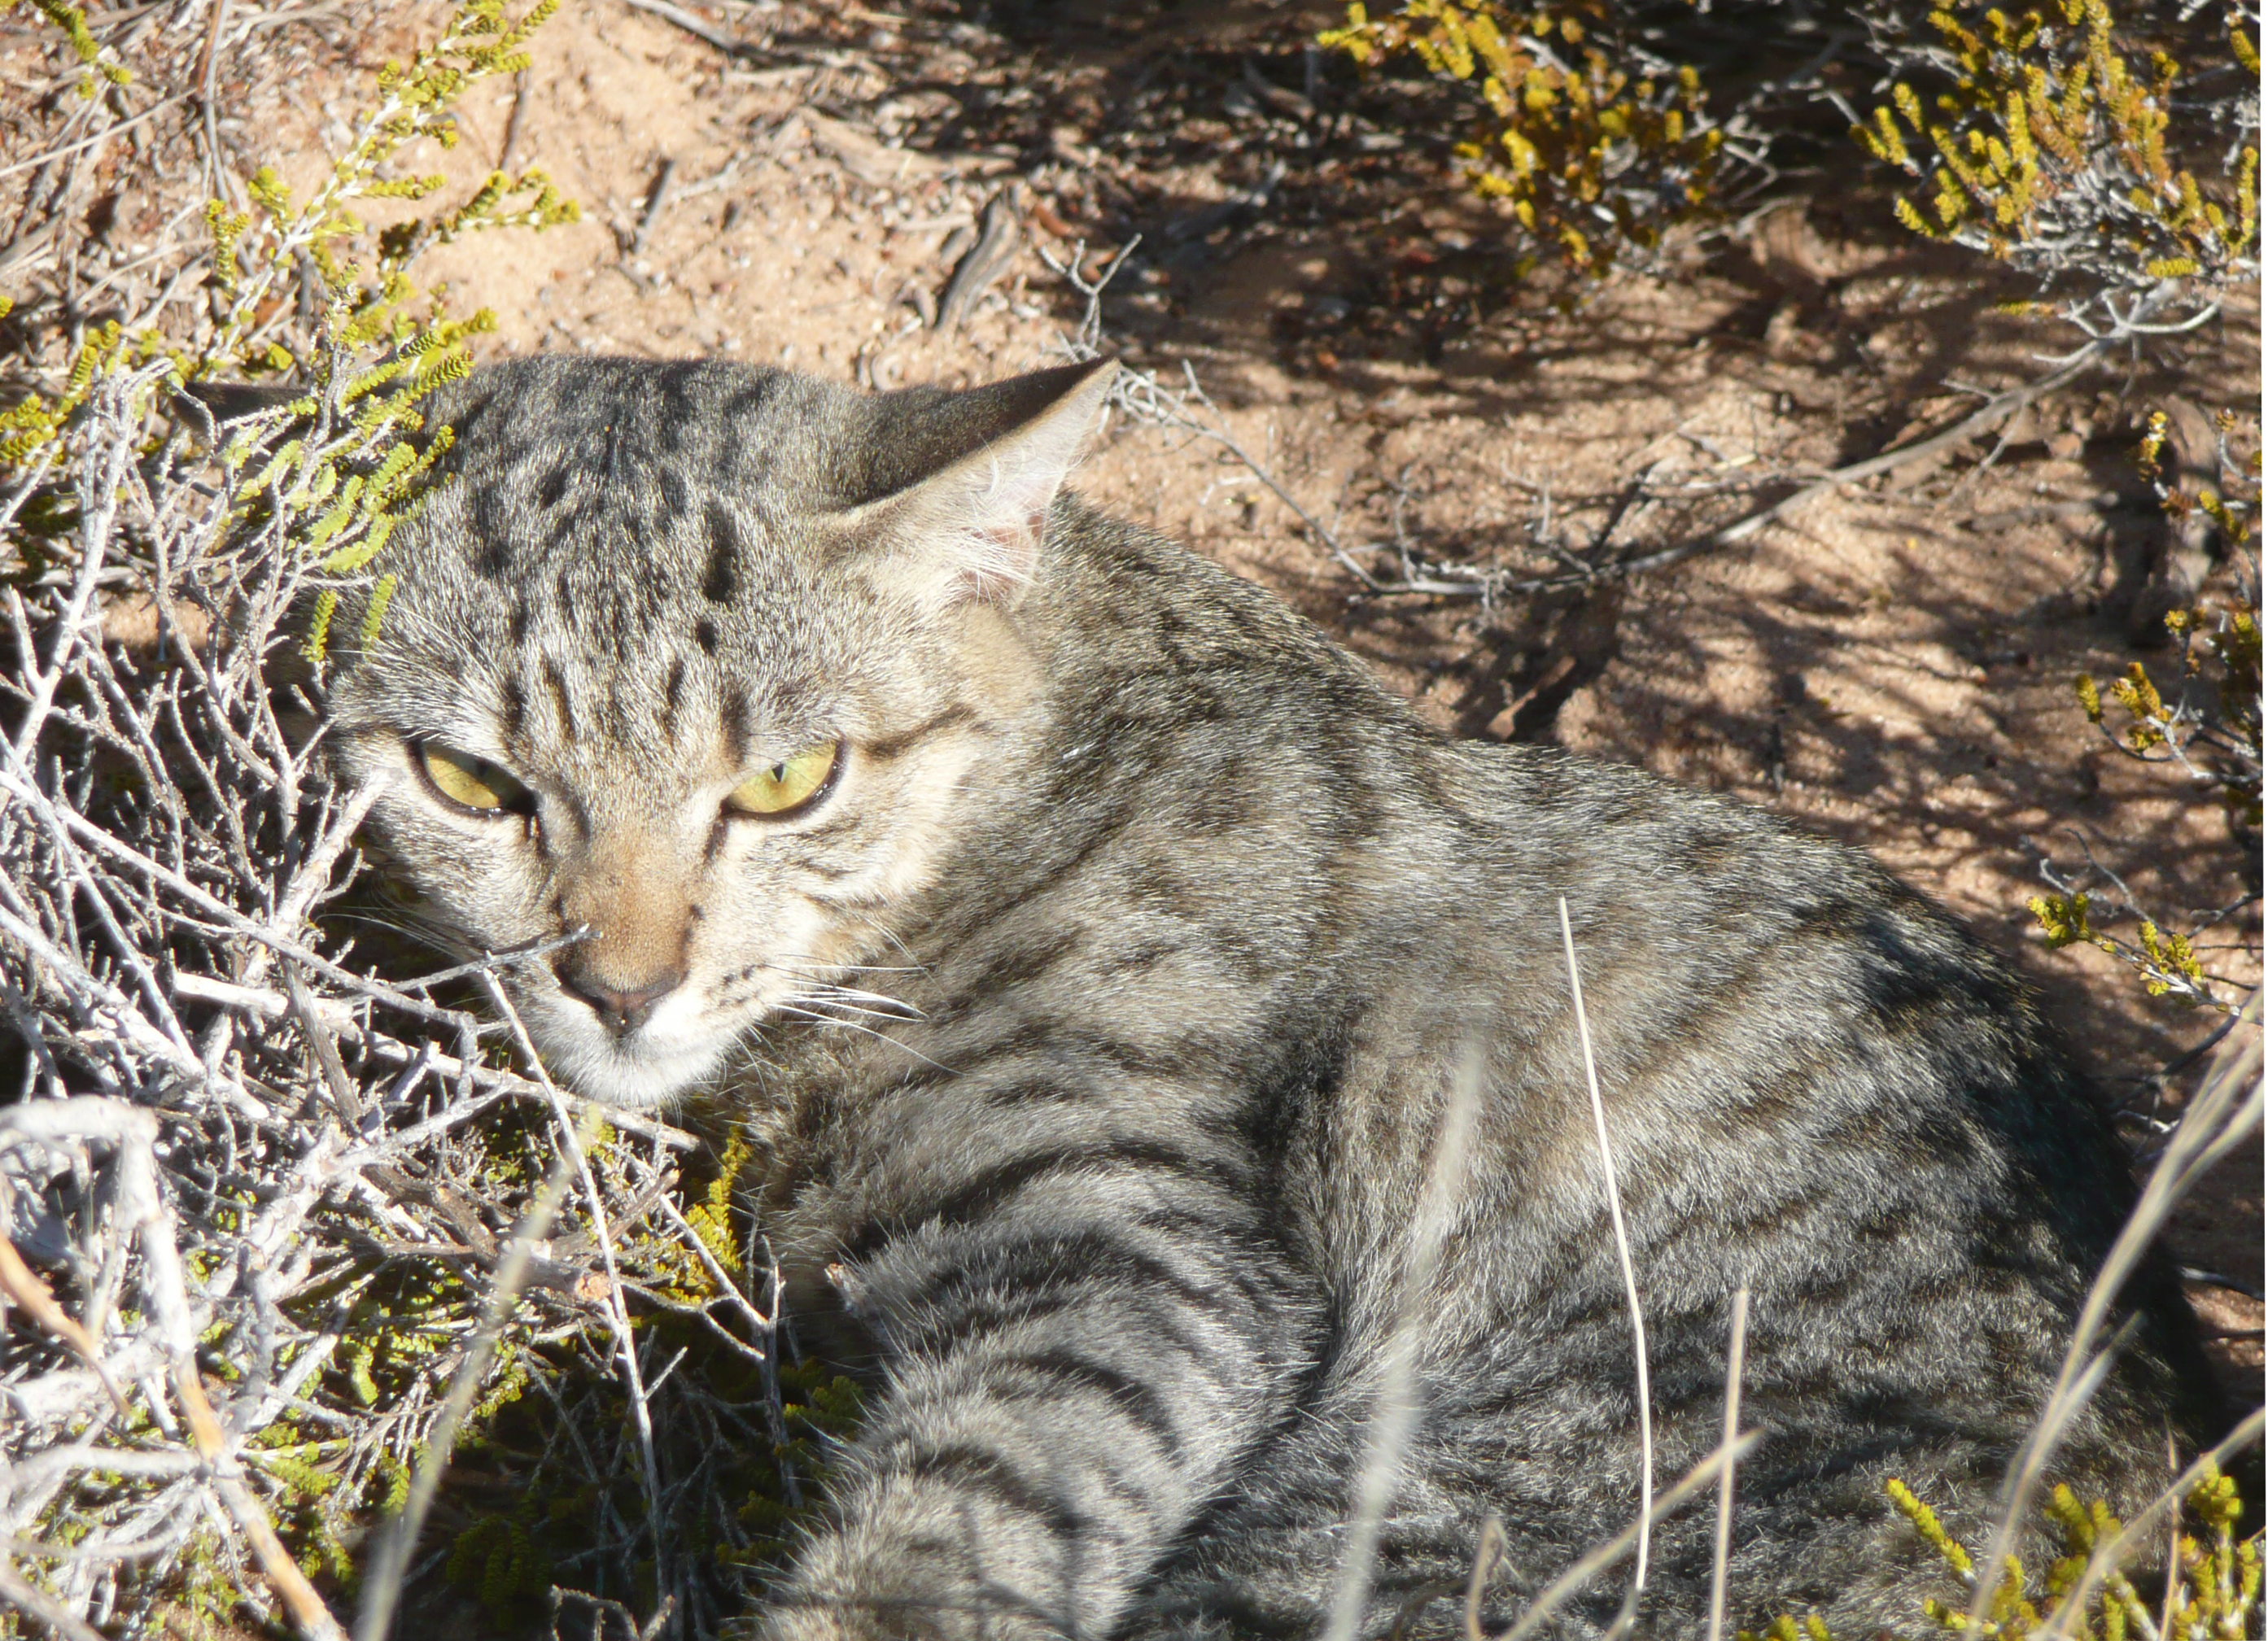 Did European settlers bring cats over with them to Australia?